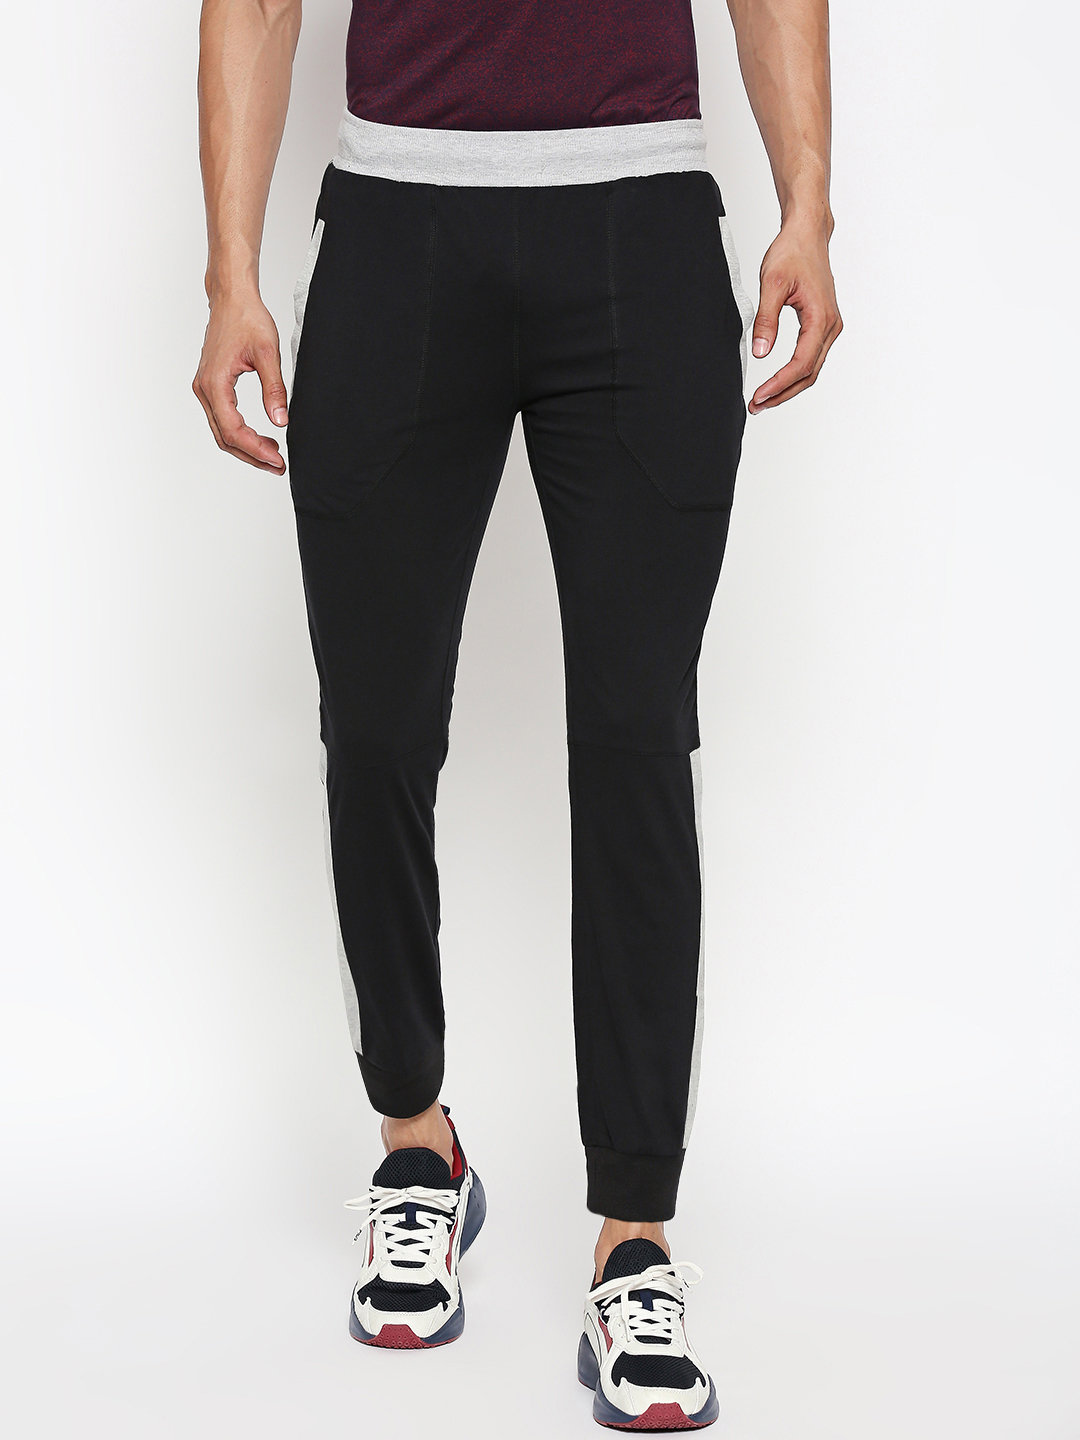 FITZ   black side taped jogger